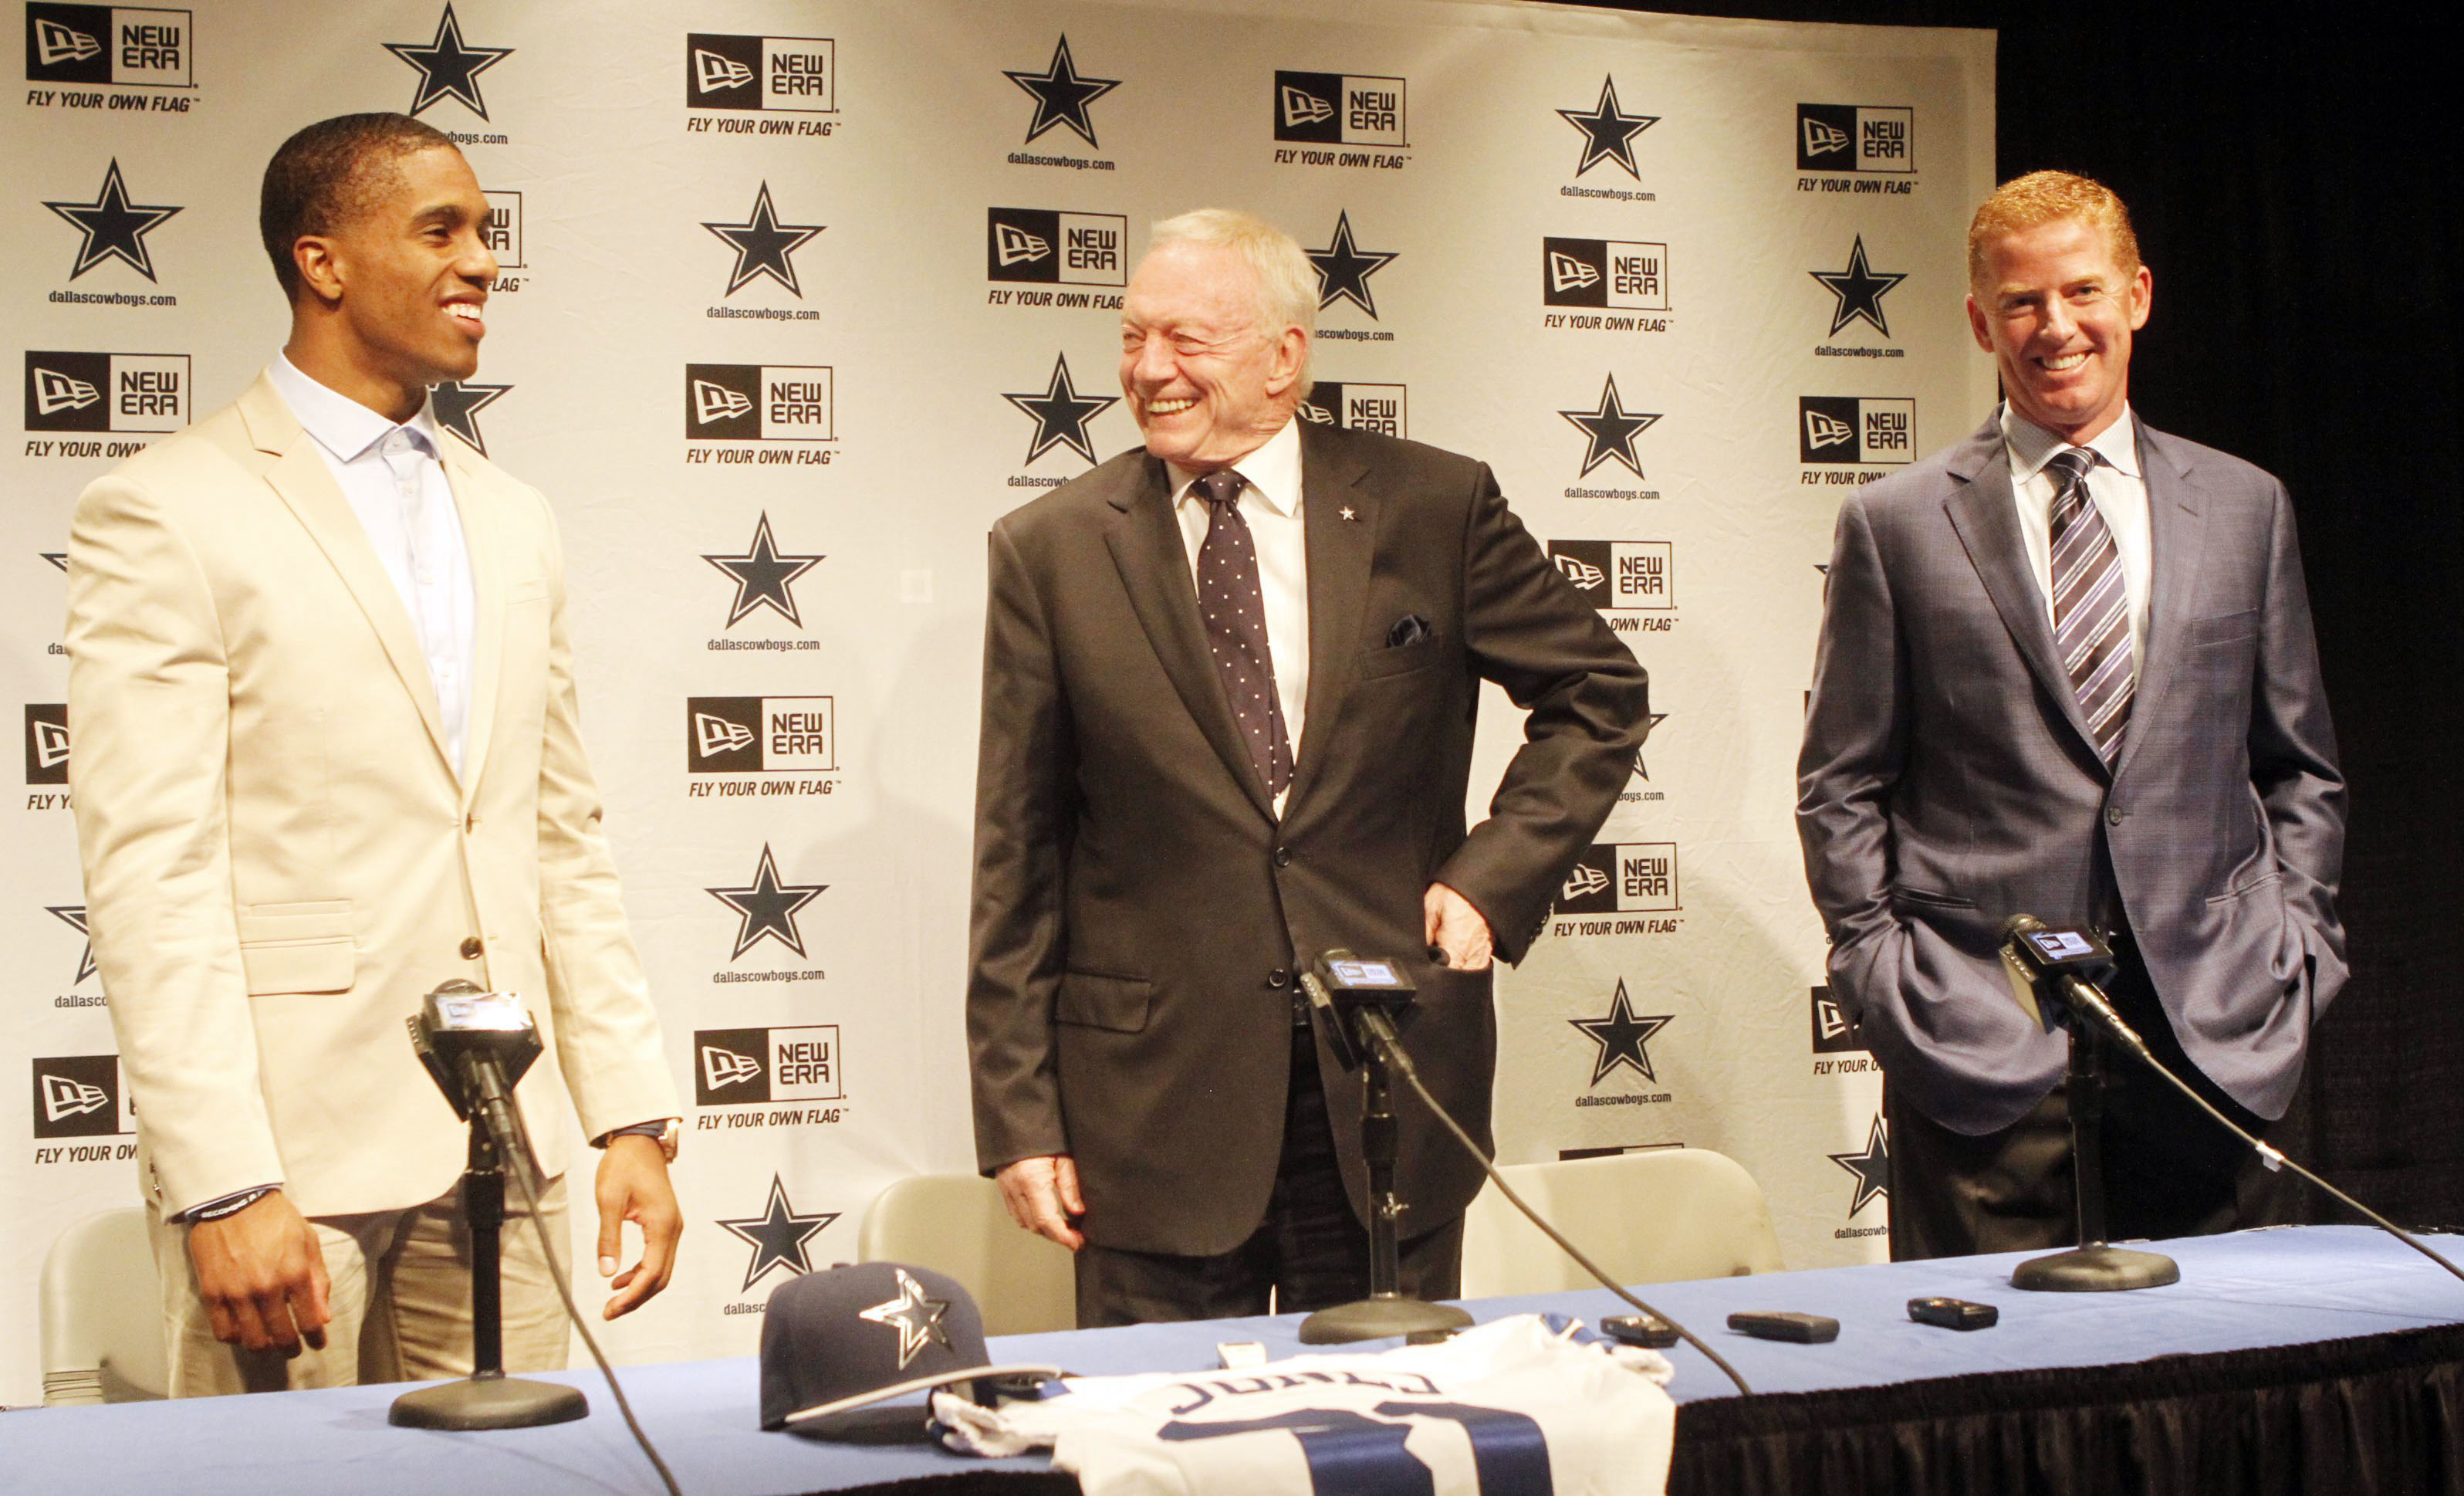 Dallas Cowboys first-round draft pick Byron Jones, left, talks with owner Jerry Jones, second from right, and head coach Jason Garrett during a news conference Friday, May 1, 2015, in Valley Ranch, Texas. (Jeffery Washington/The Fort Worth Star-Telegram v